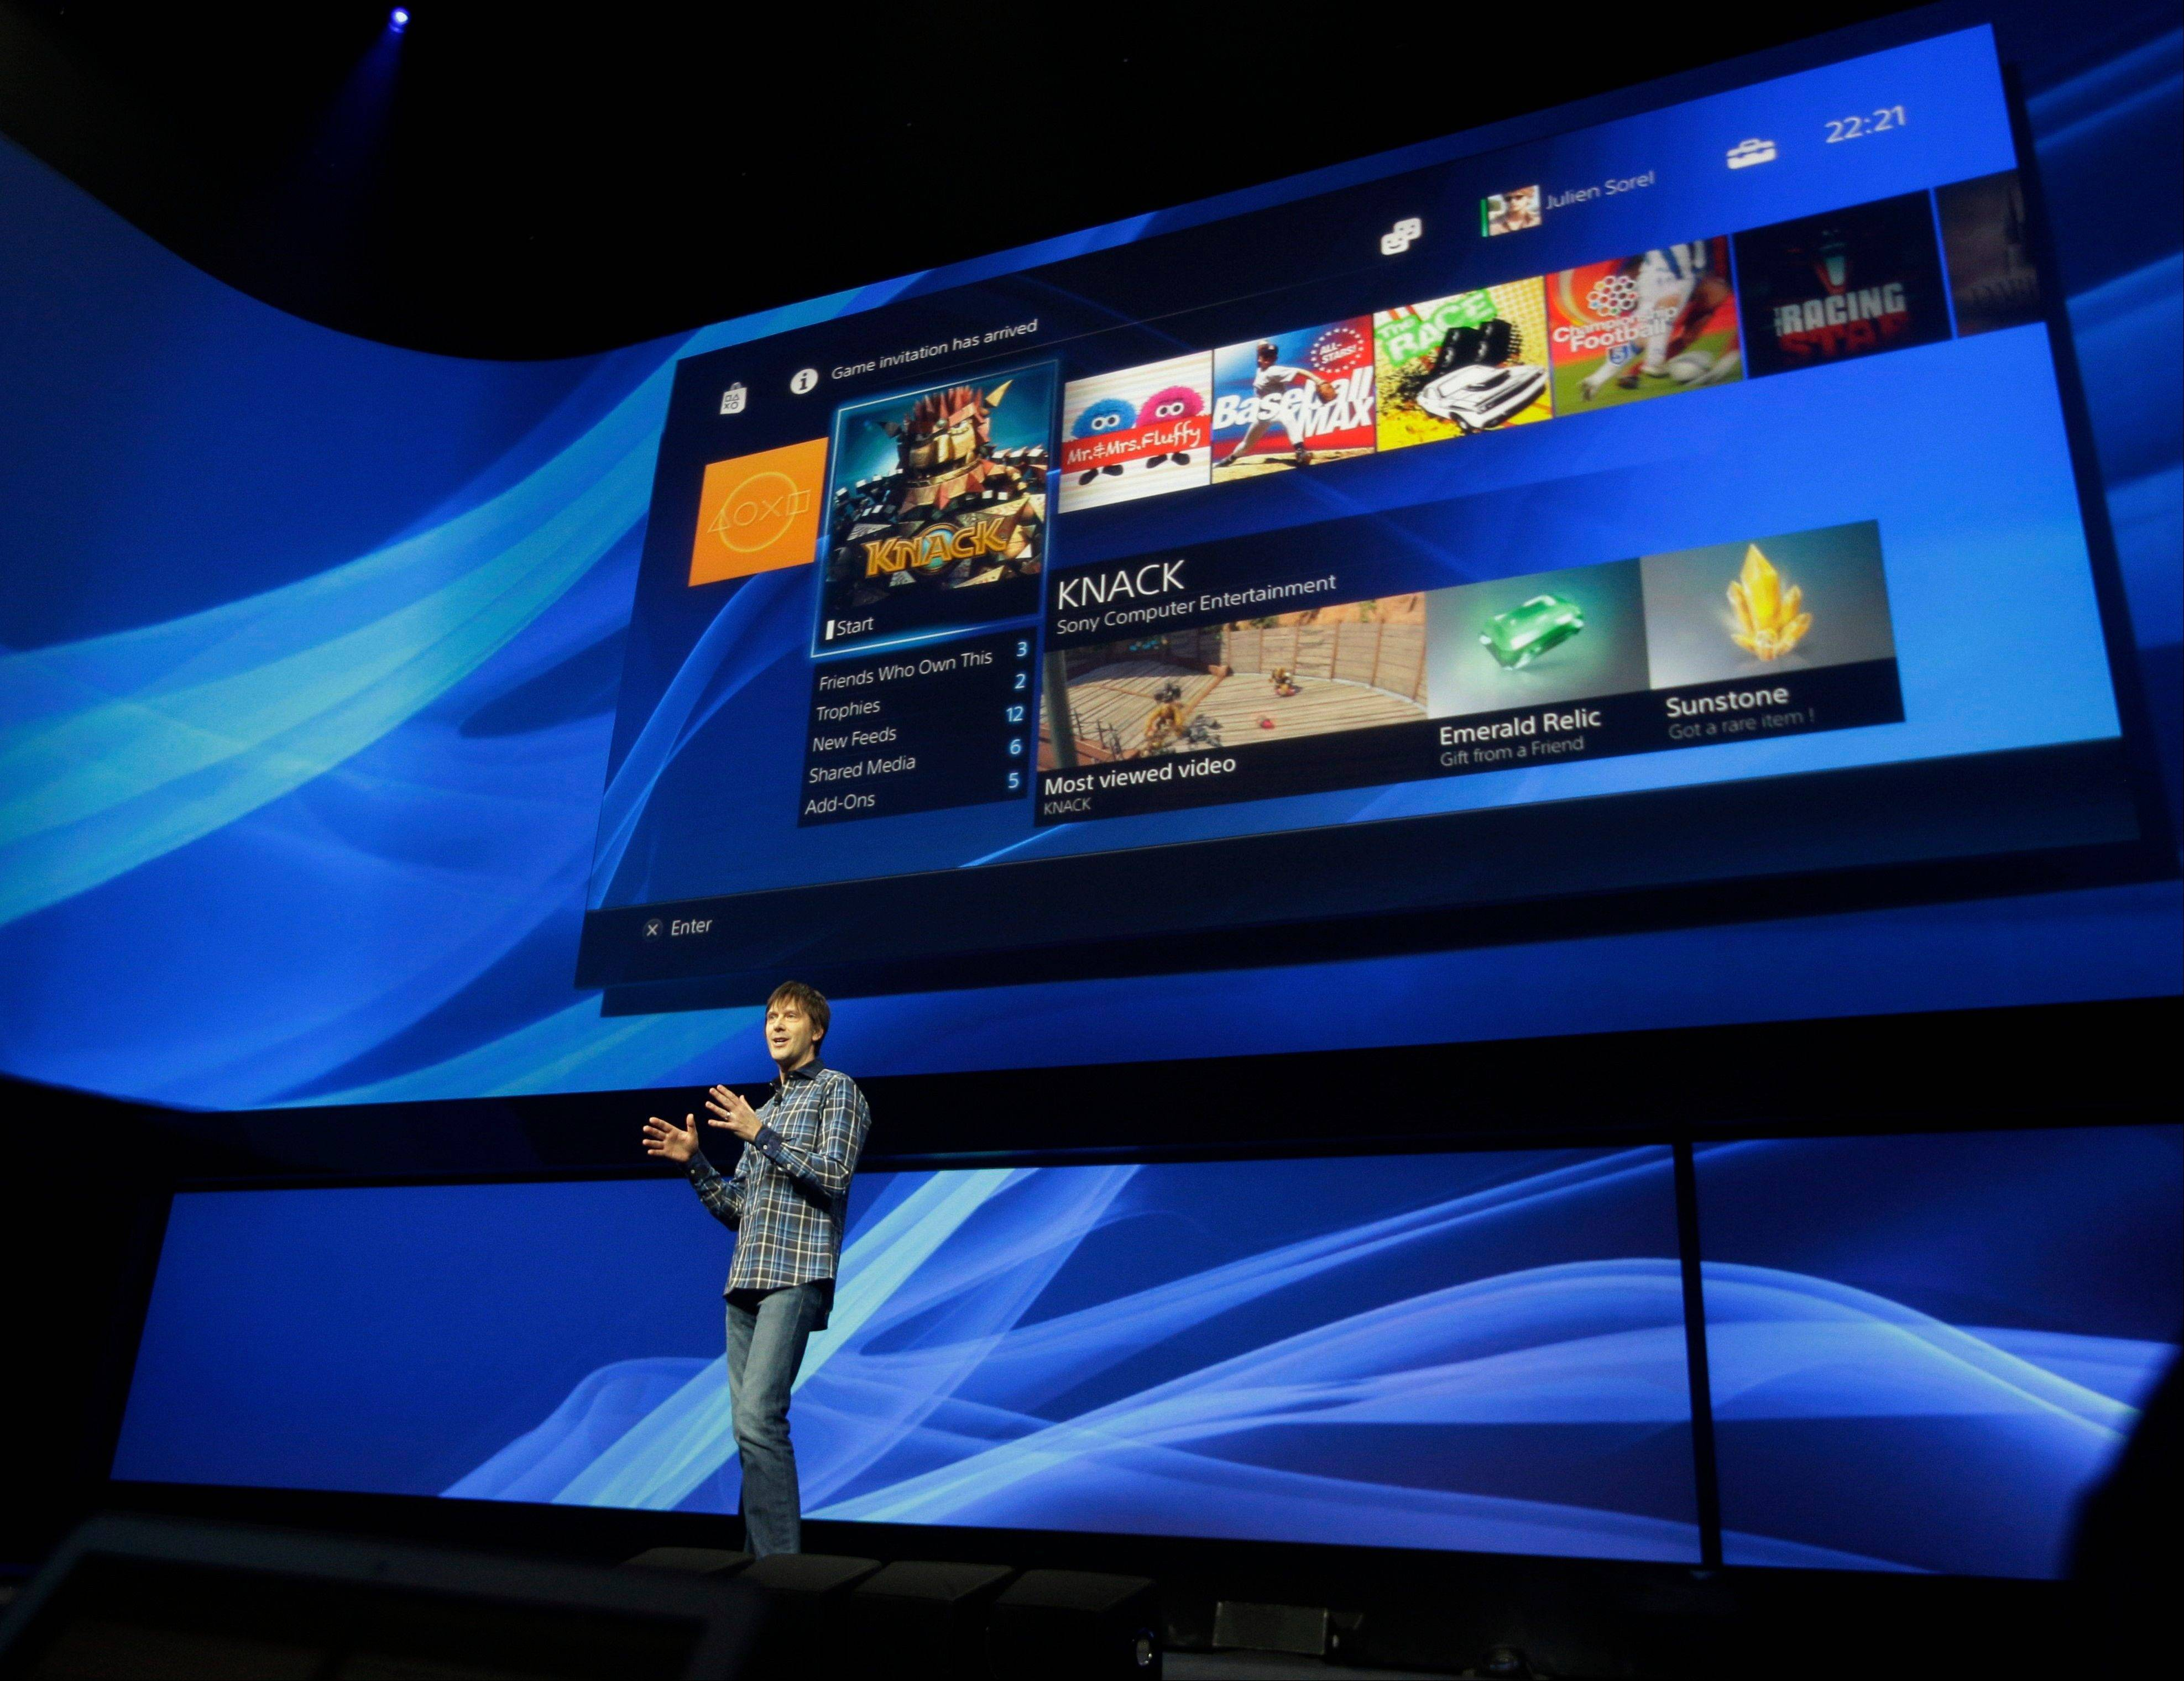 Mark Cerny, lead system architect for the Sony Playstation 4, describes the new video game console Wednesday in New York. This is Sony's first new video game console in seven years, and it introduces new cloud and social-media features.